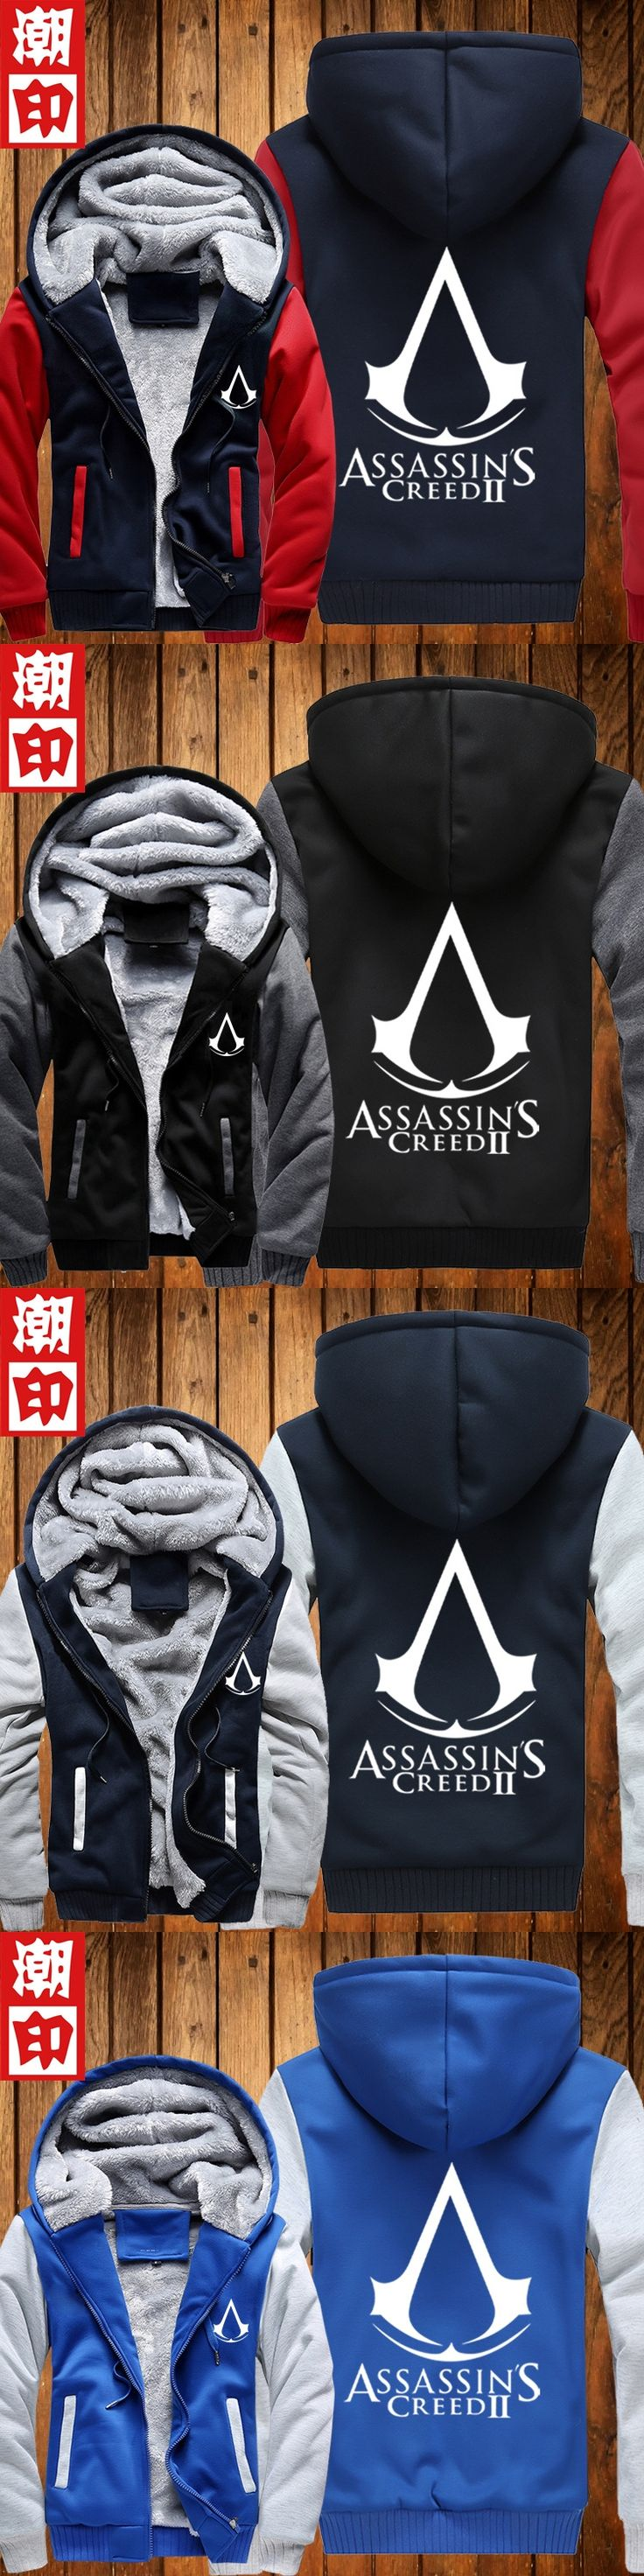 Top Quality Thick Warm Assasin Creed Winter Fleece Lined Cosplay Coat Assassins Creed Hoodie Black Grey Unity plus size S-5XL